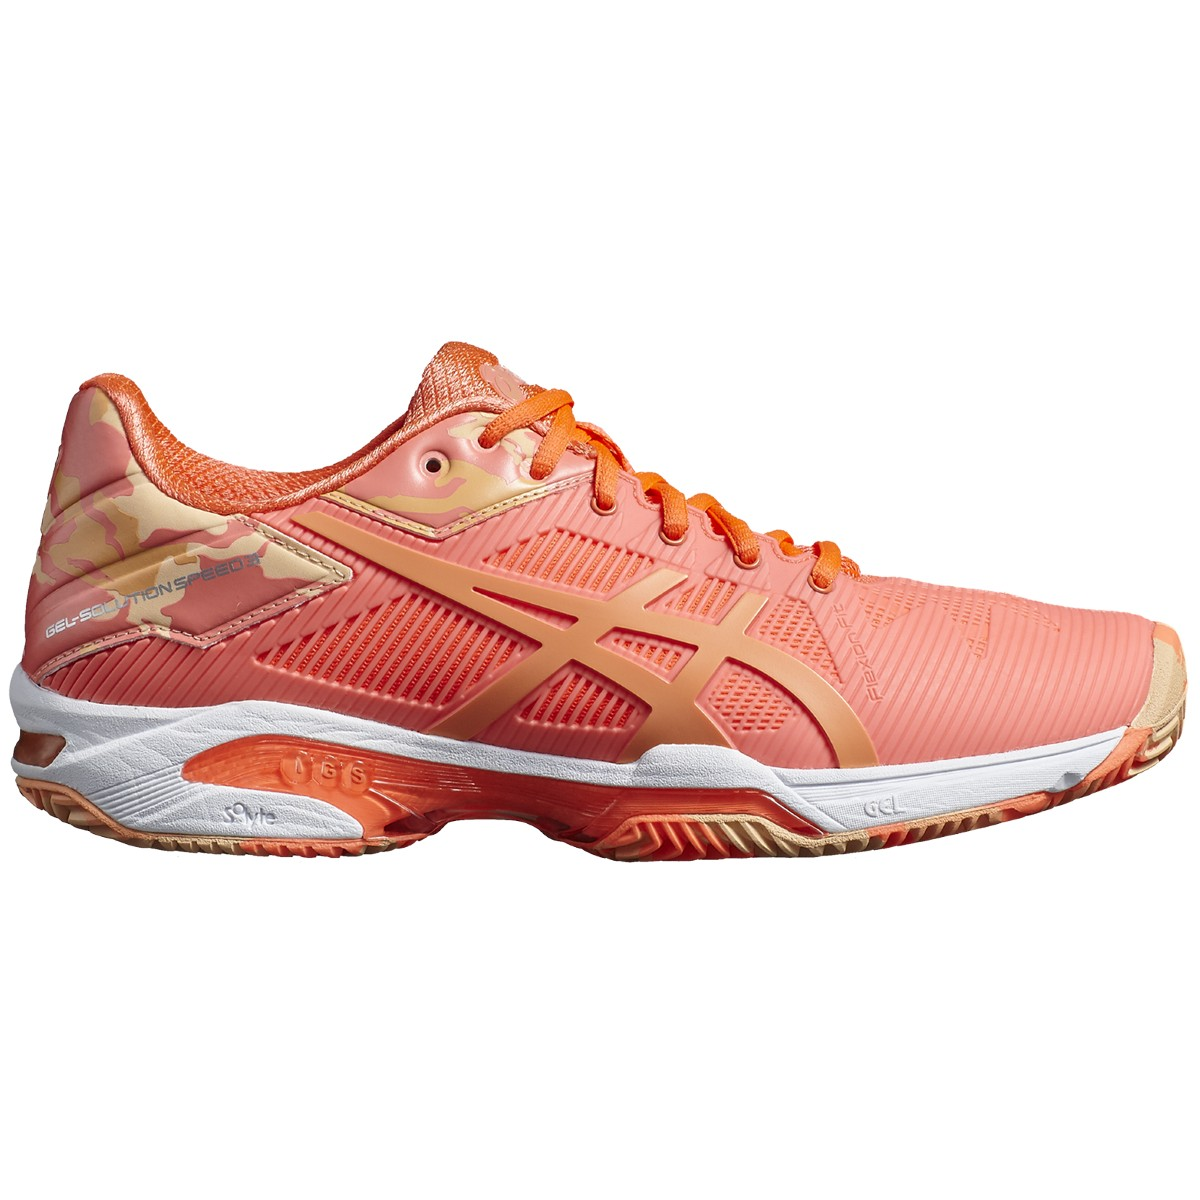 7a24671658f71f CHAUSSURES ASICS FEMME GEL SOLUTION SOLUTION SPEED 3 EXCLUSIVE TERRE BATTUE  +